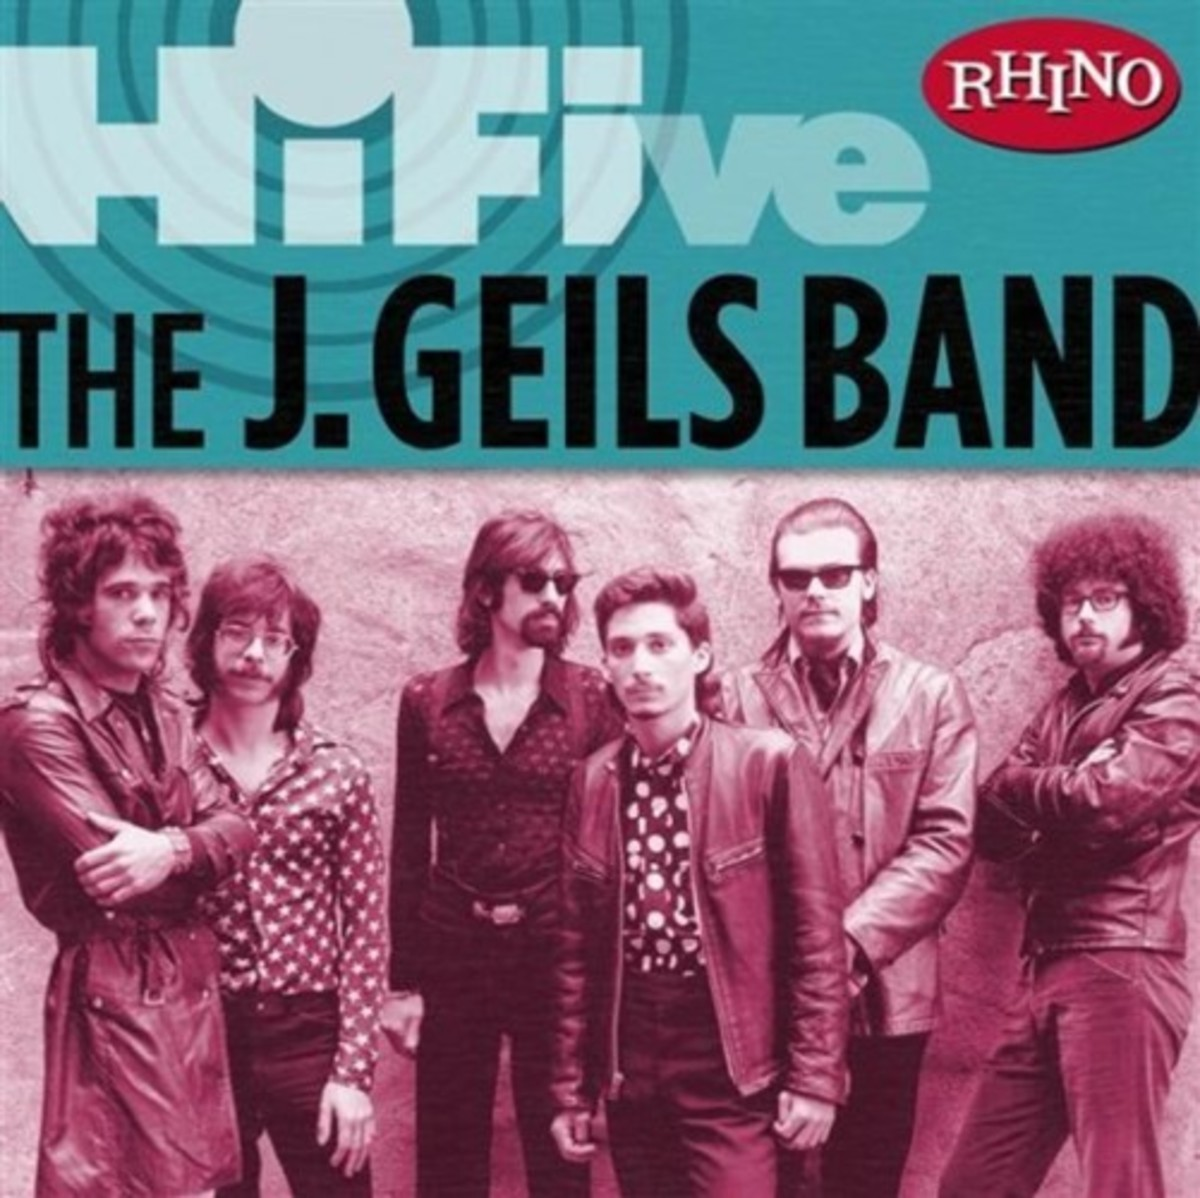 hi_five_the_j_geils_band_2005_front